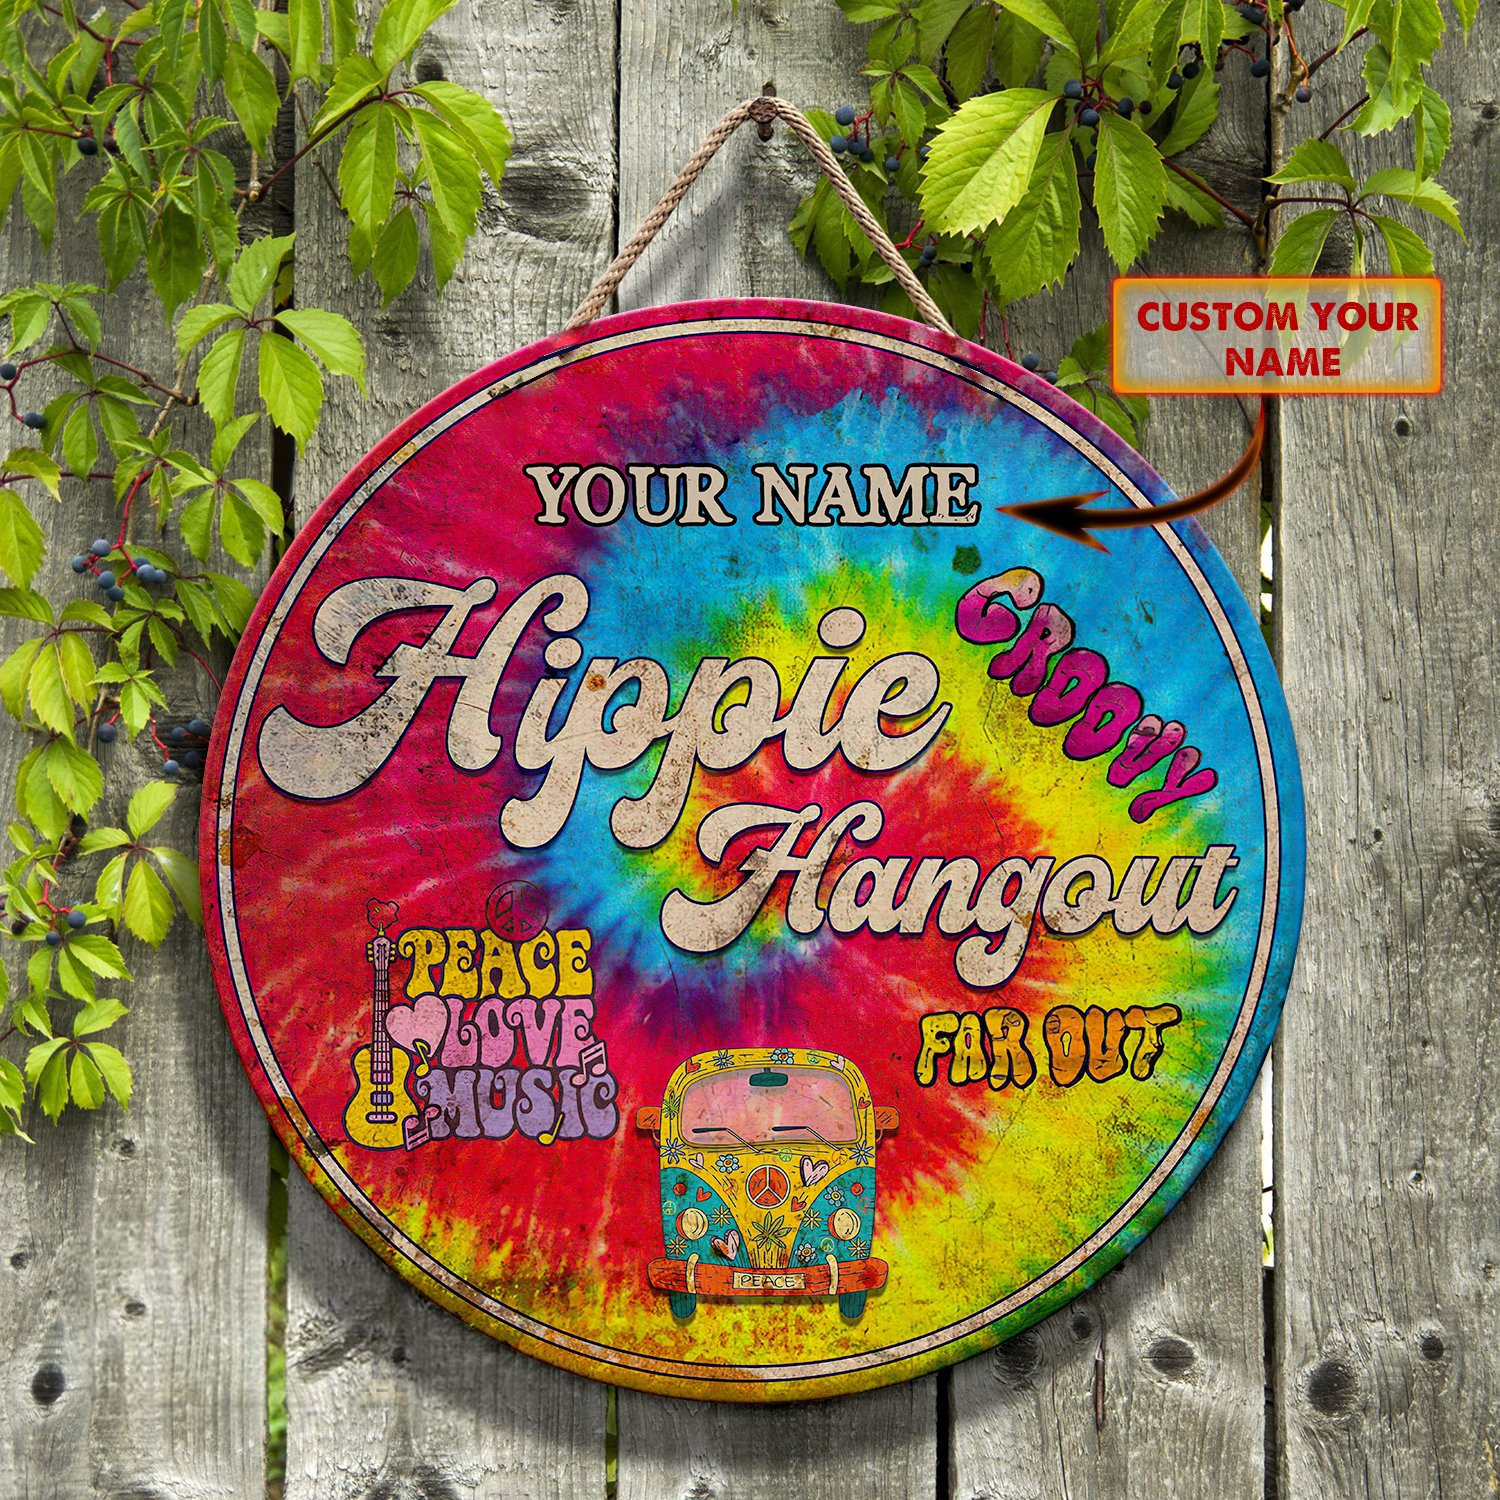 Hippie hangout peace love music far out custom name wooden sign